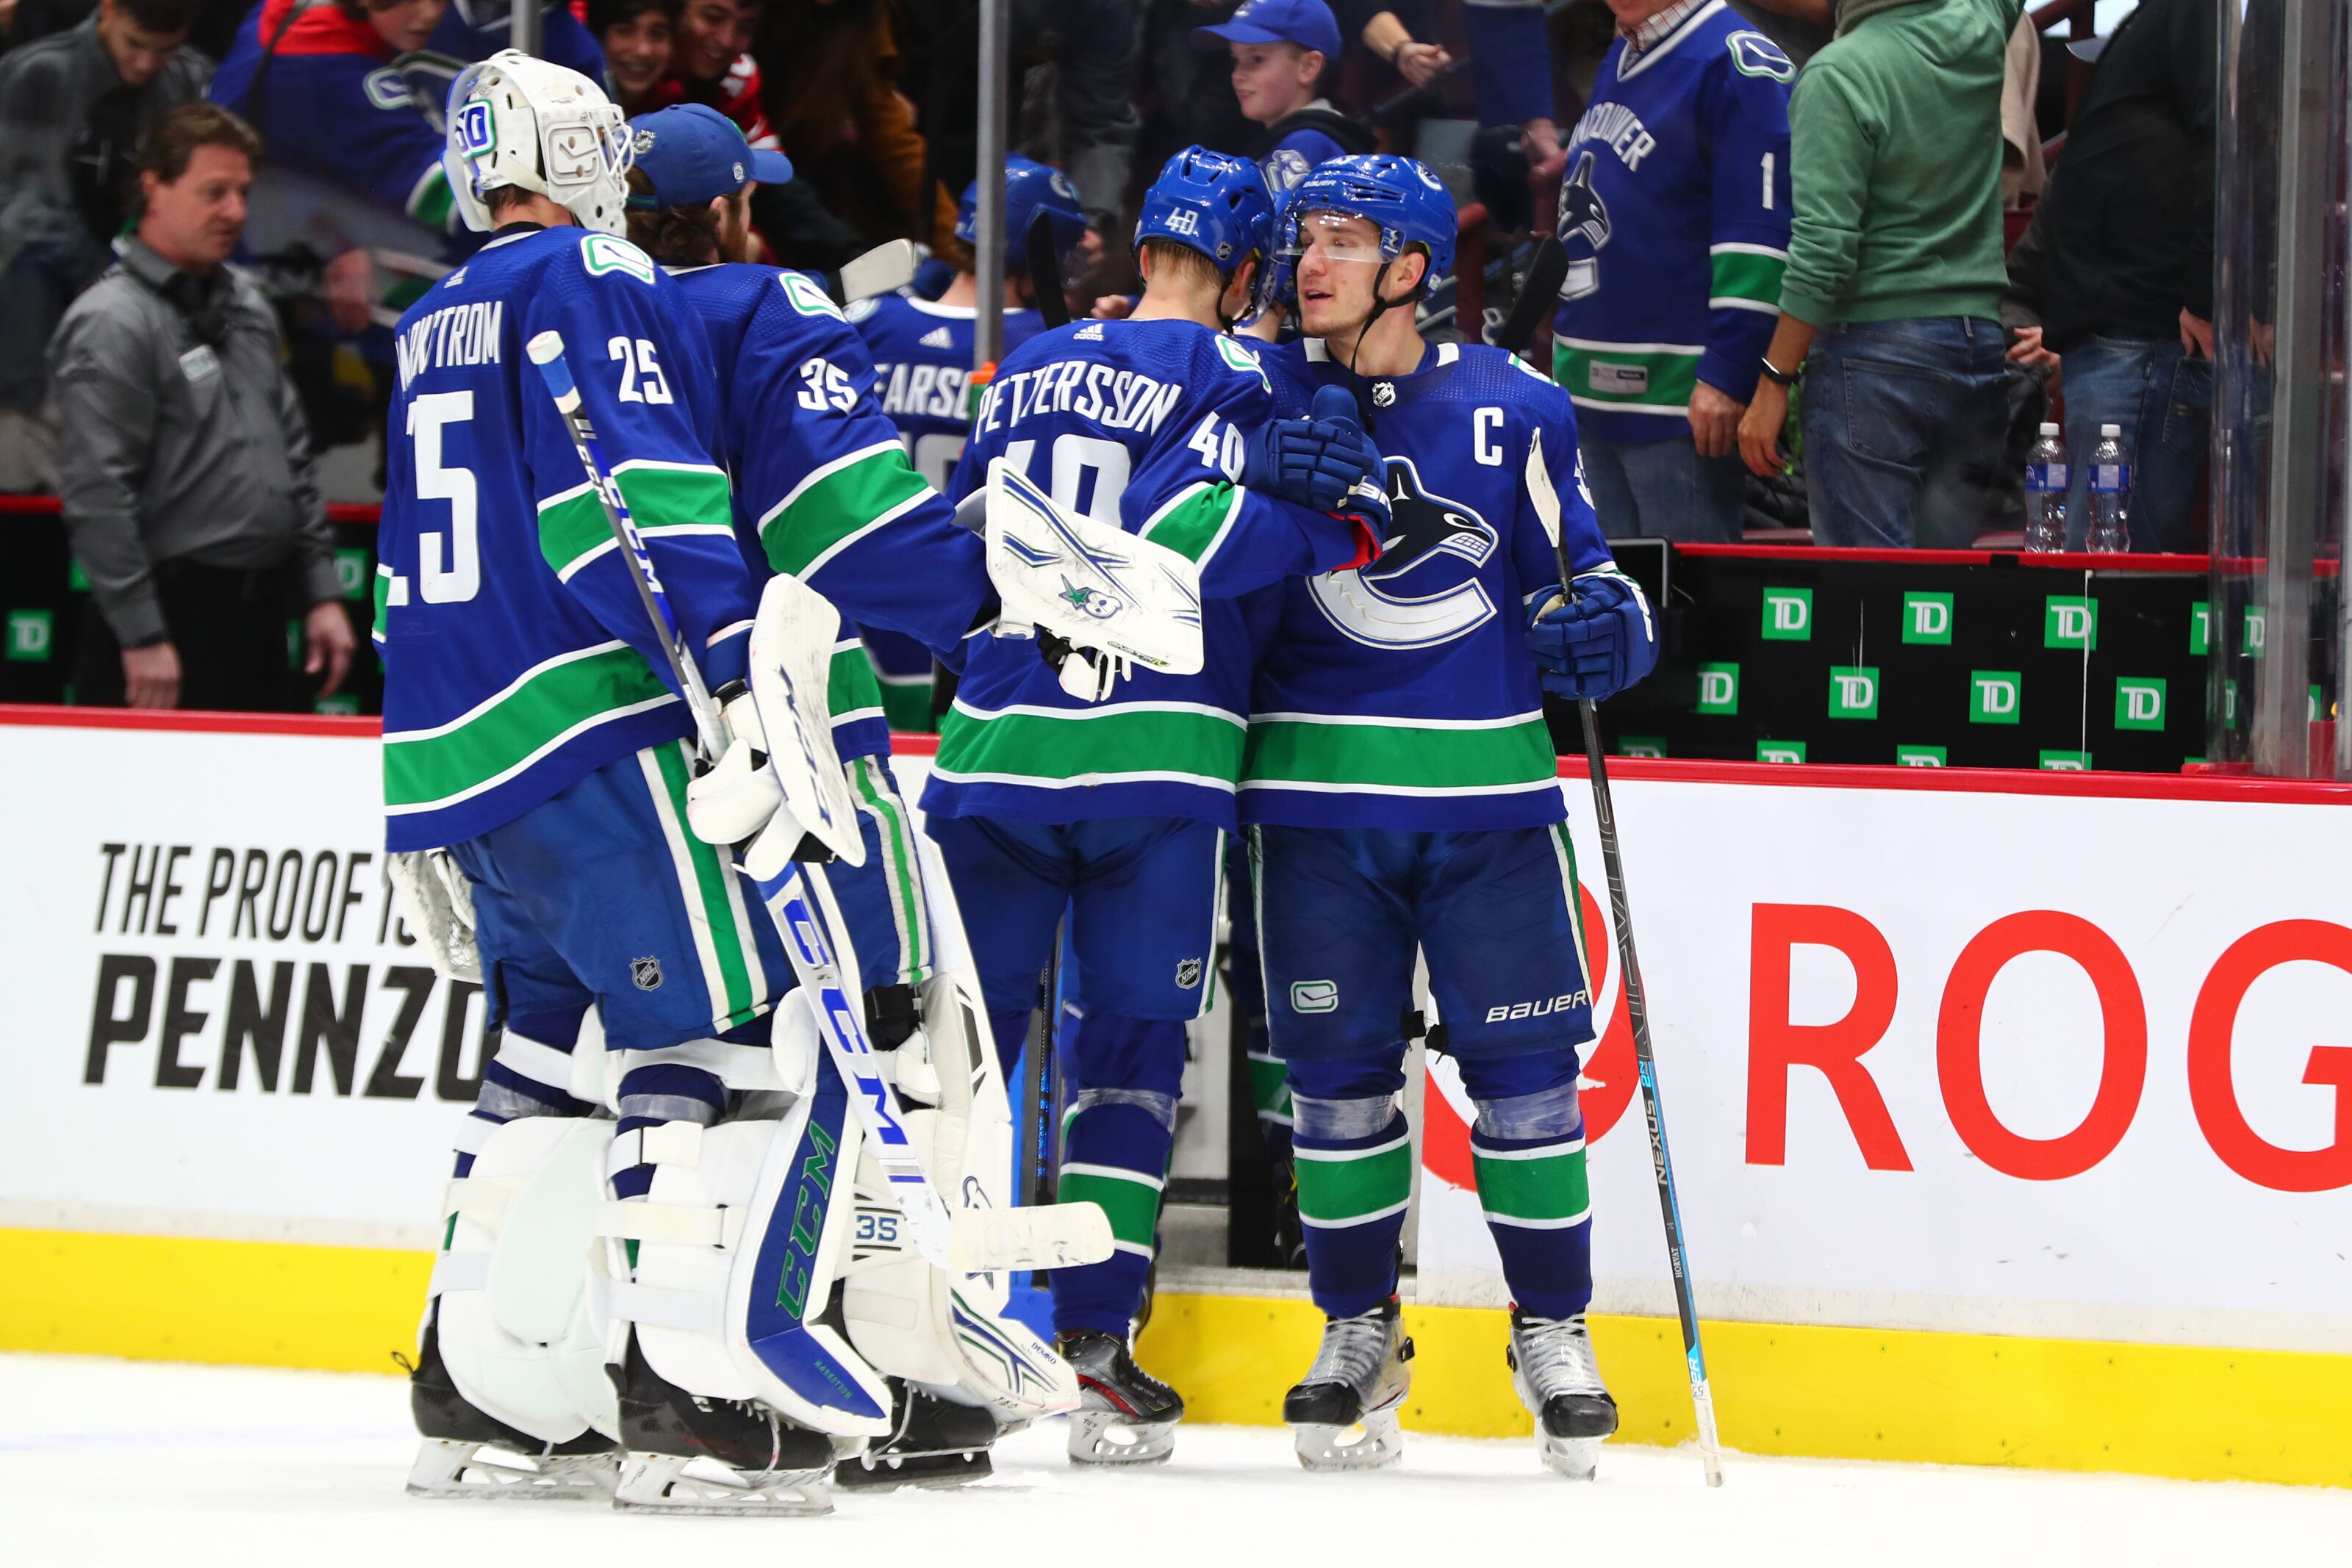 5 Reasons why the Canucks are first place in the Pacific Division